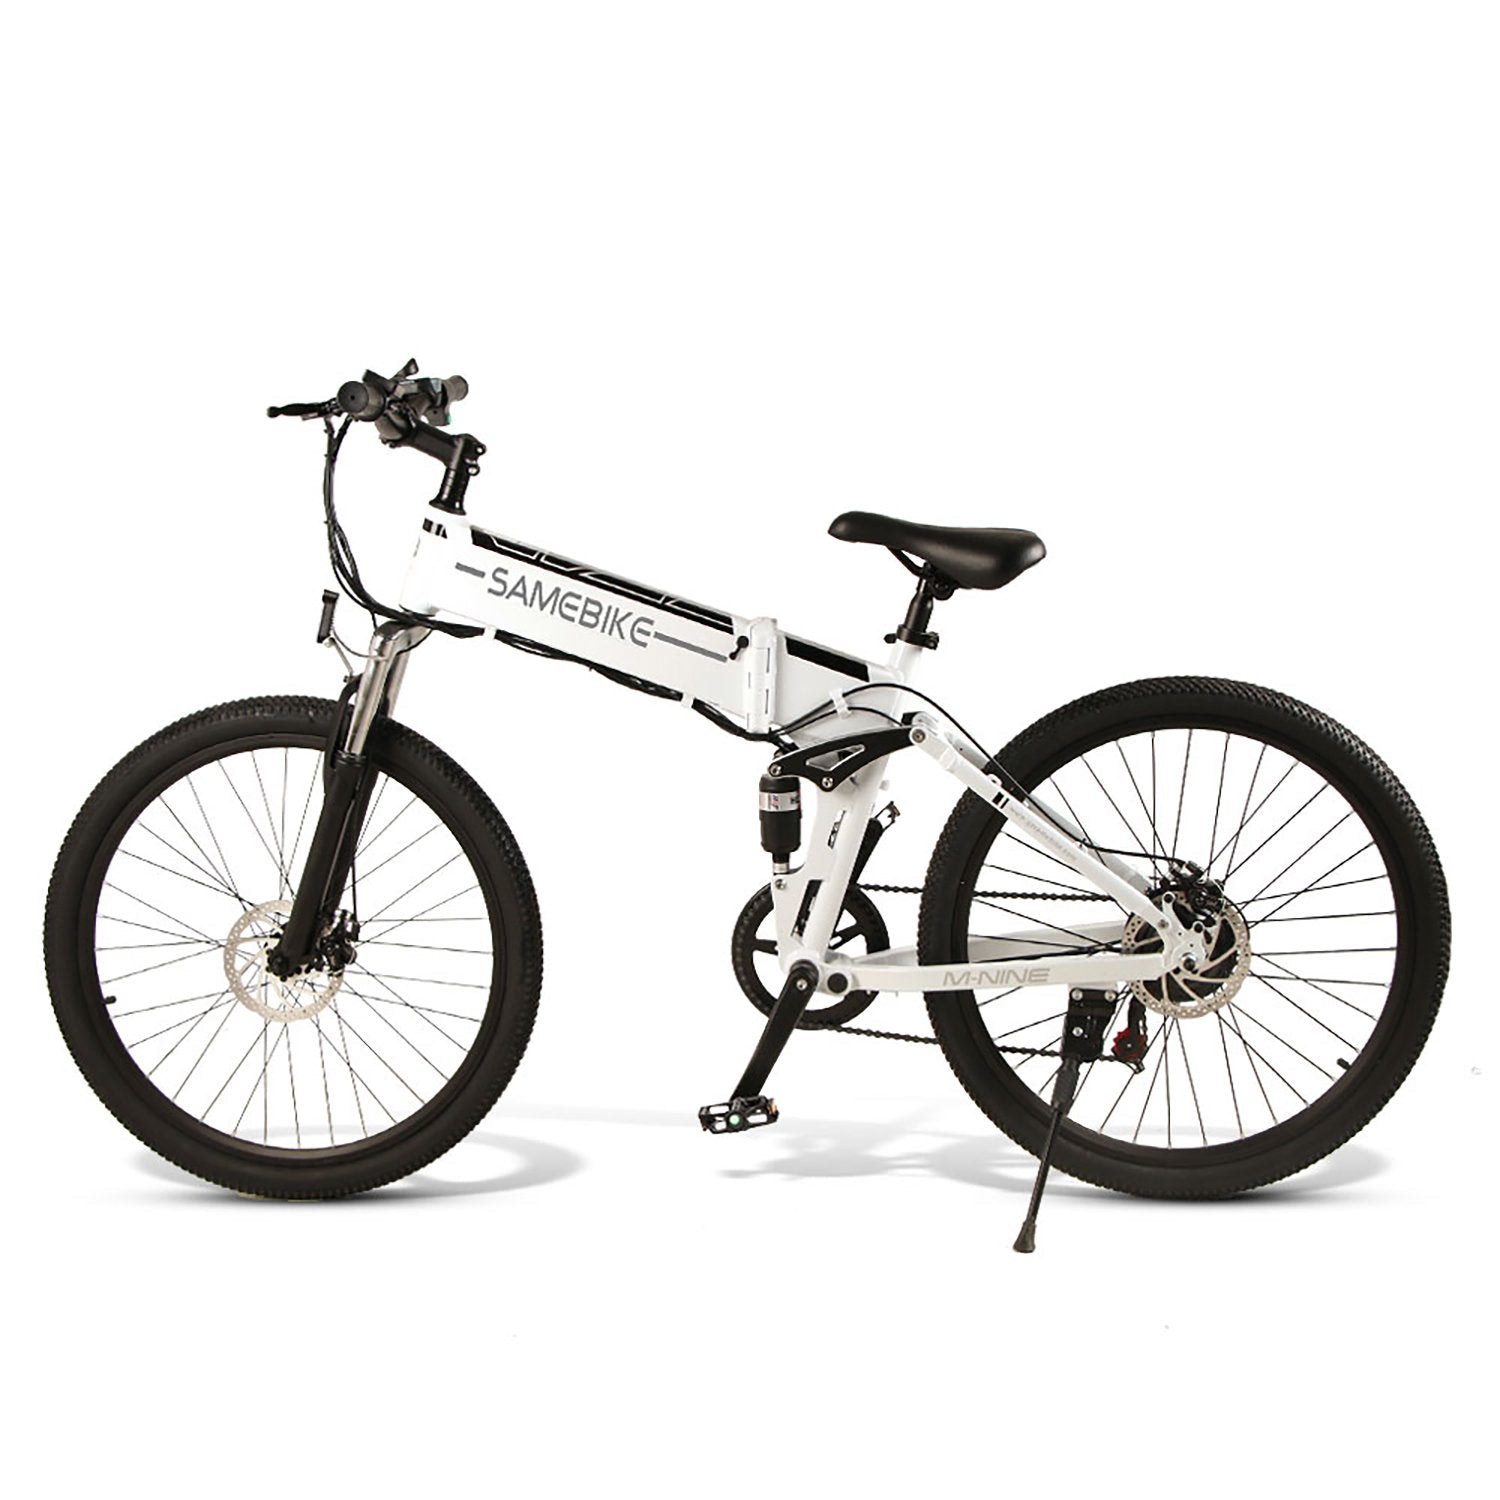 SAMEBIKE LO26-FT Folding Electric Bike 26 Inch Tires 500W Motor 10.4Ah Battery Max 35 KPH